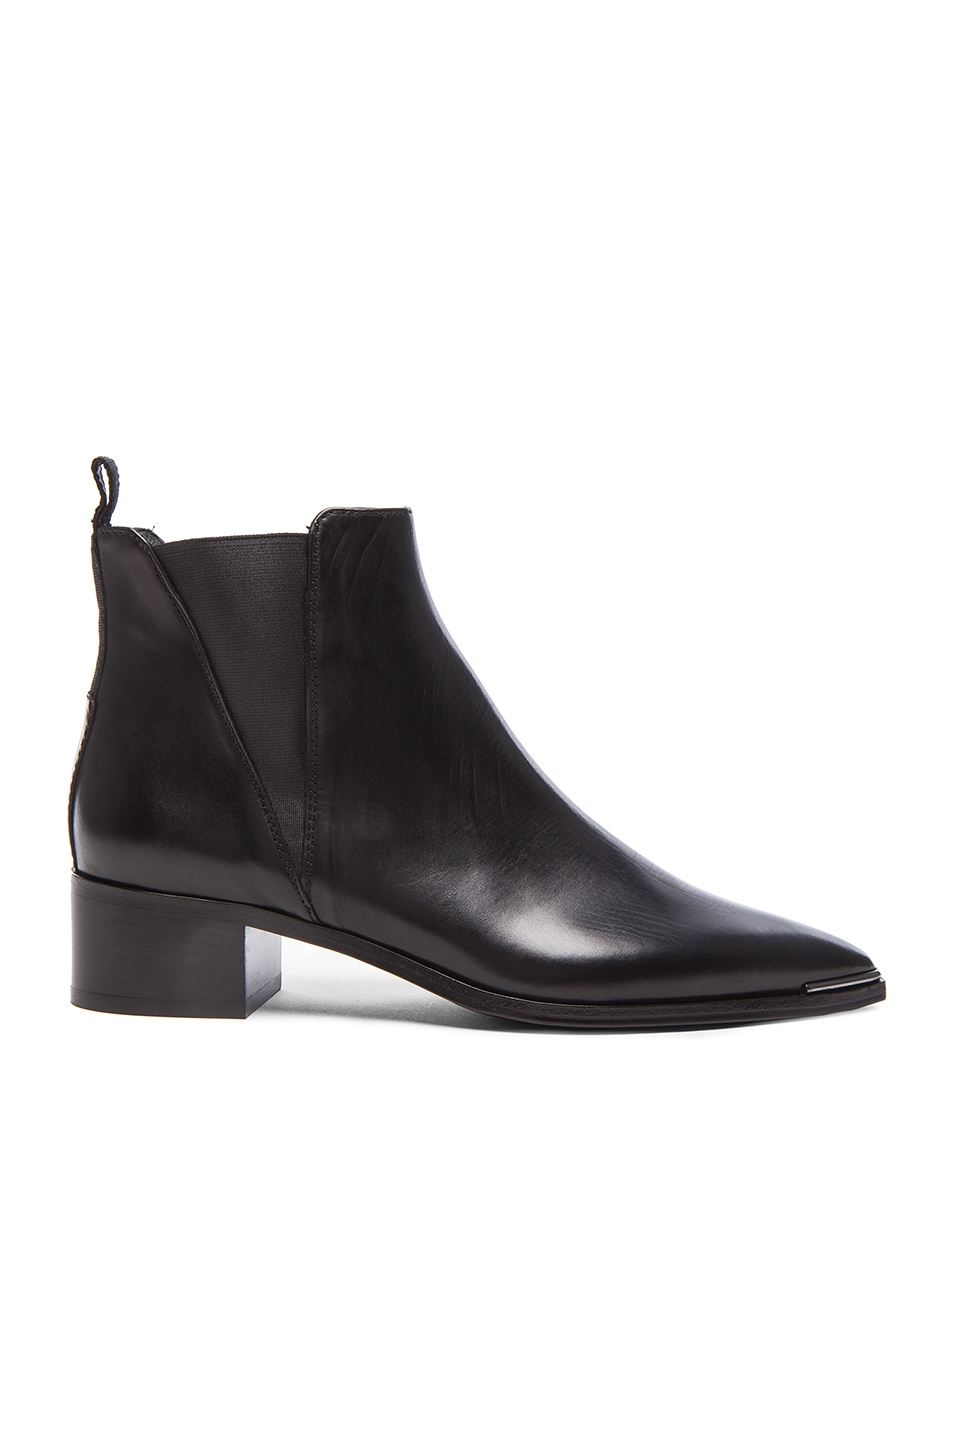 Image 1 of Acne Studios Jensen Leather Booties in Black